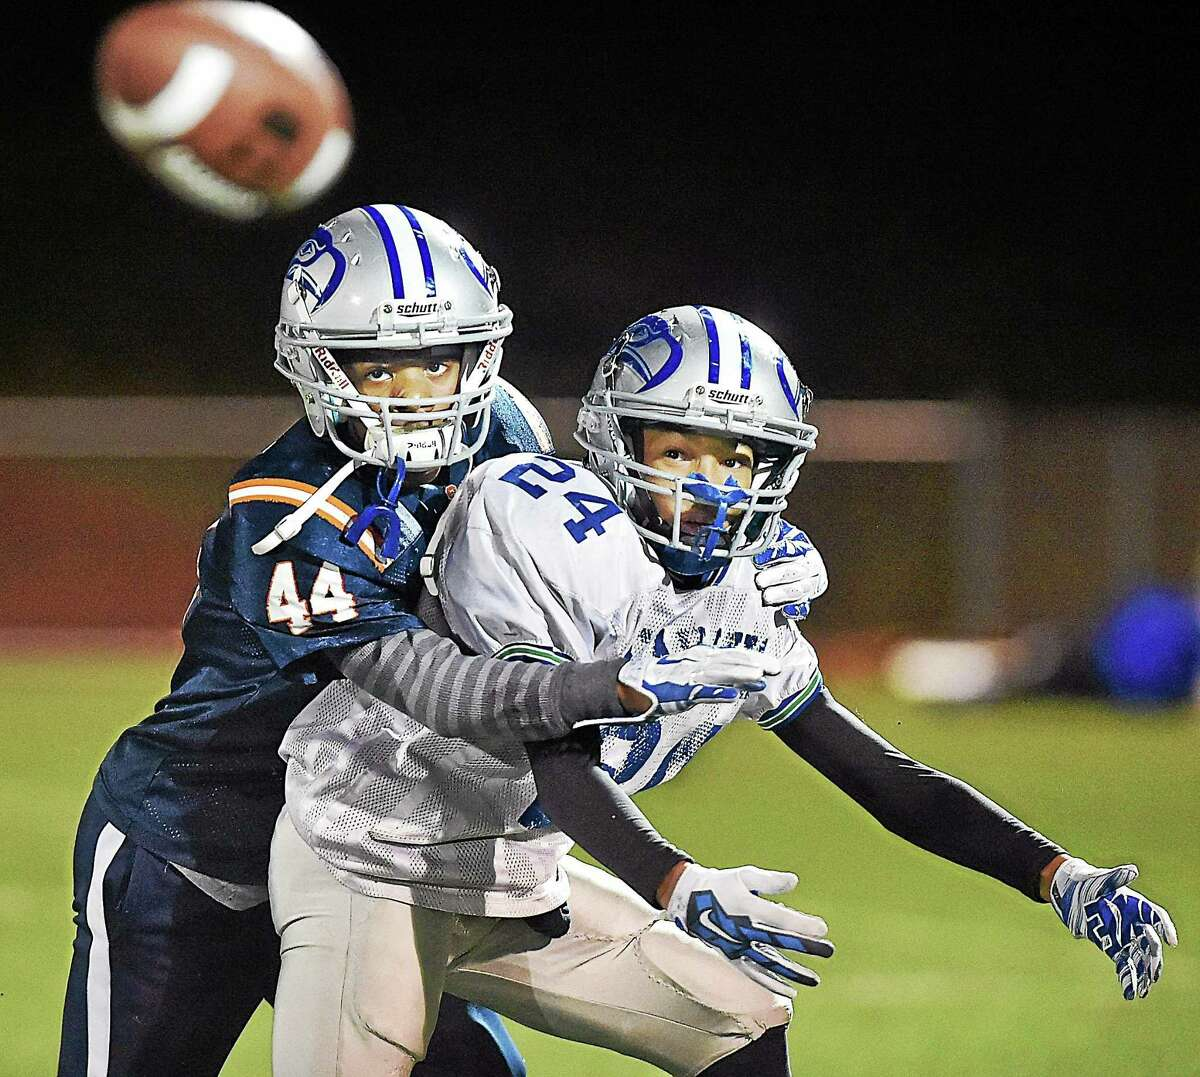 (Catherine Avalone - New Haven Register) Jordan Berrios (24) and Jaden Shirden (44) run through an offensive play at a West Haven Seahawks at practice Wednesday night, December 3, 2014 at the Veterans Memorial Field in West Haven. The Seahawks defeated the two-time Division I New England Junior Midget champion, Dorcester Eagles of Mass. 7-6 on November 29, 2014 and will compete in the 2014 Pop Warner Super Bowl at the ESPN Wide World of Sportsô Complex in Lake Buena Vista, Florida from December 6 - 13, 2014.